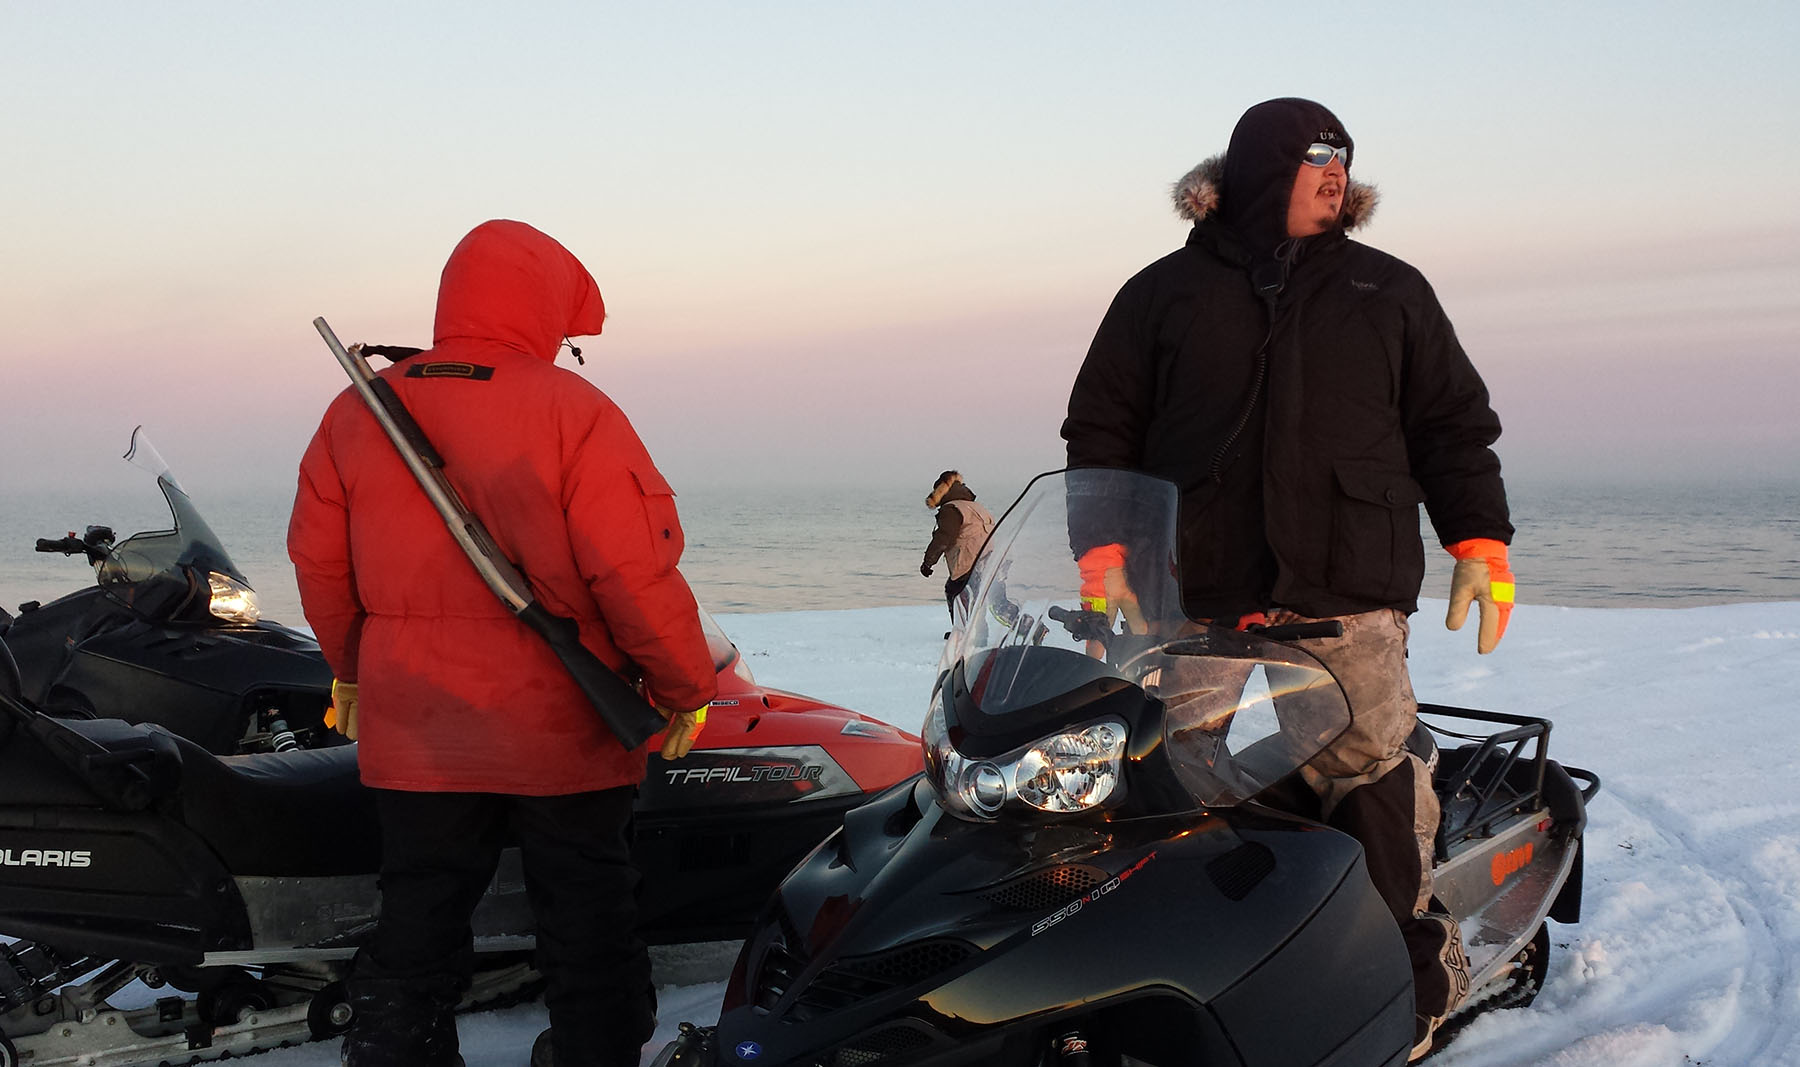 UMIAQ Bear Guards accompany Barrow-based researchers into the field to mitigate potential polar bear threats. All photos courtesy UMIAQ